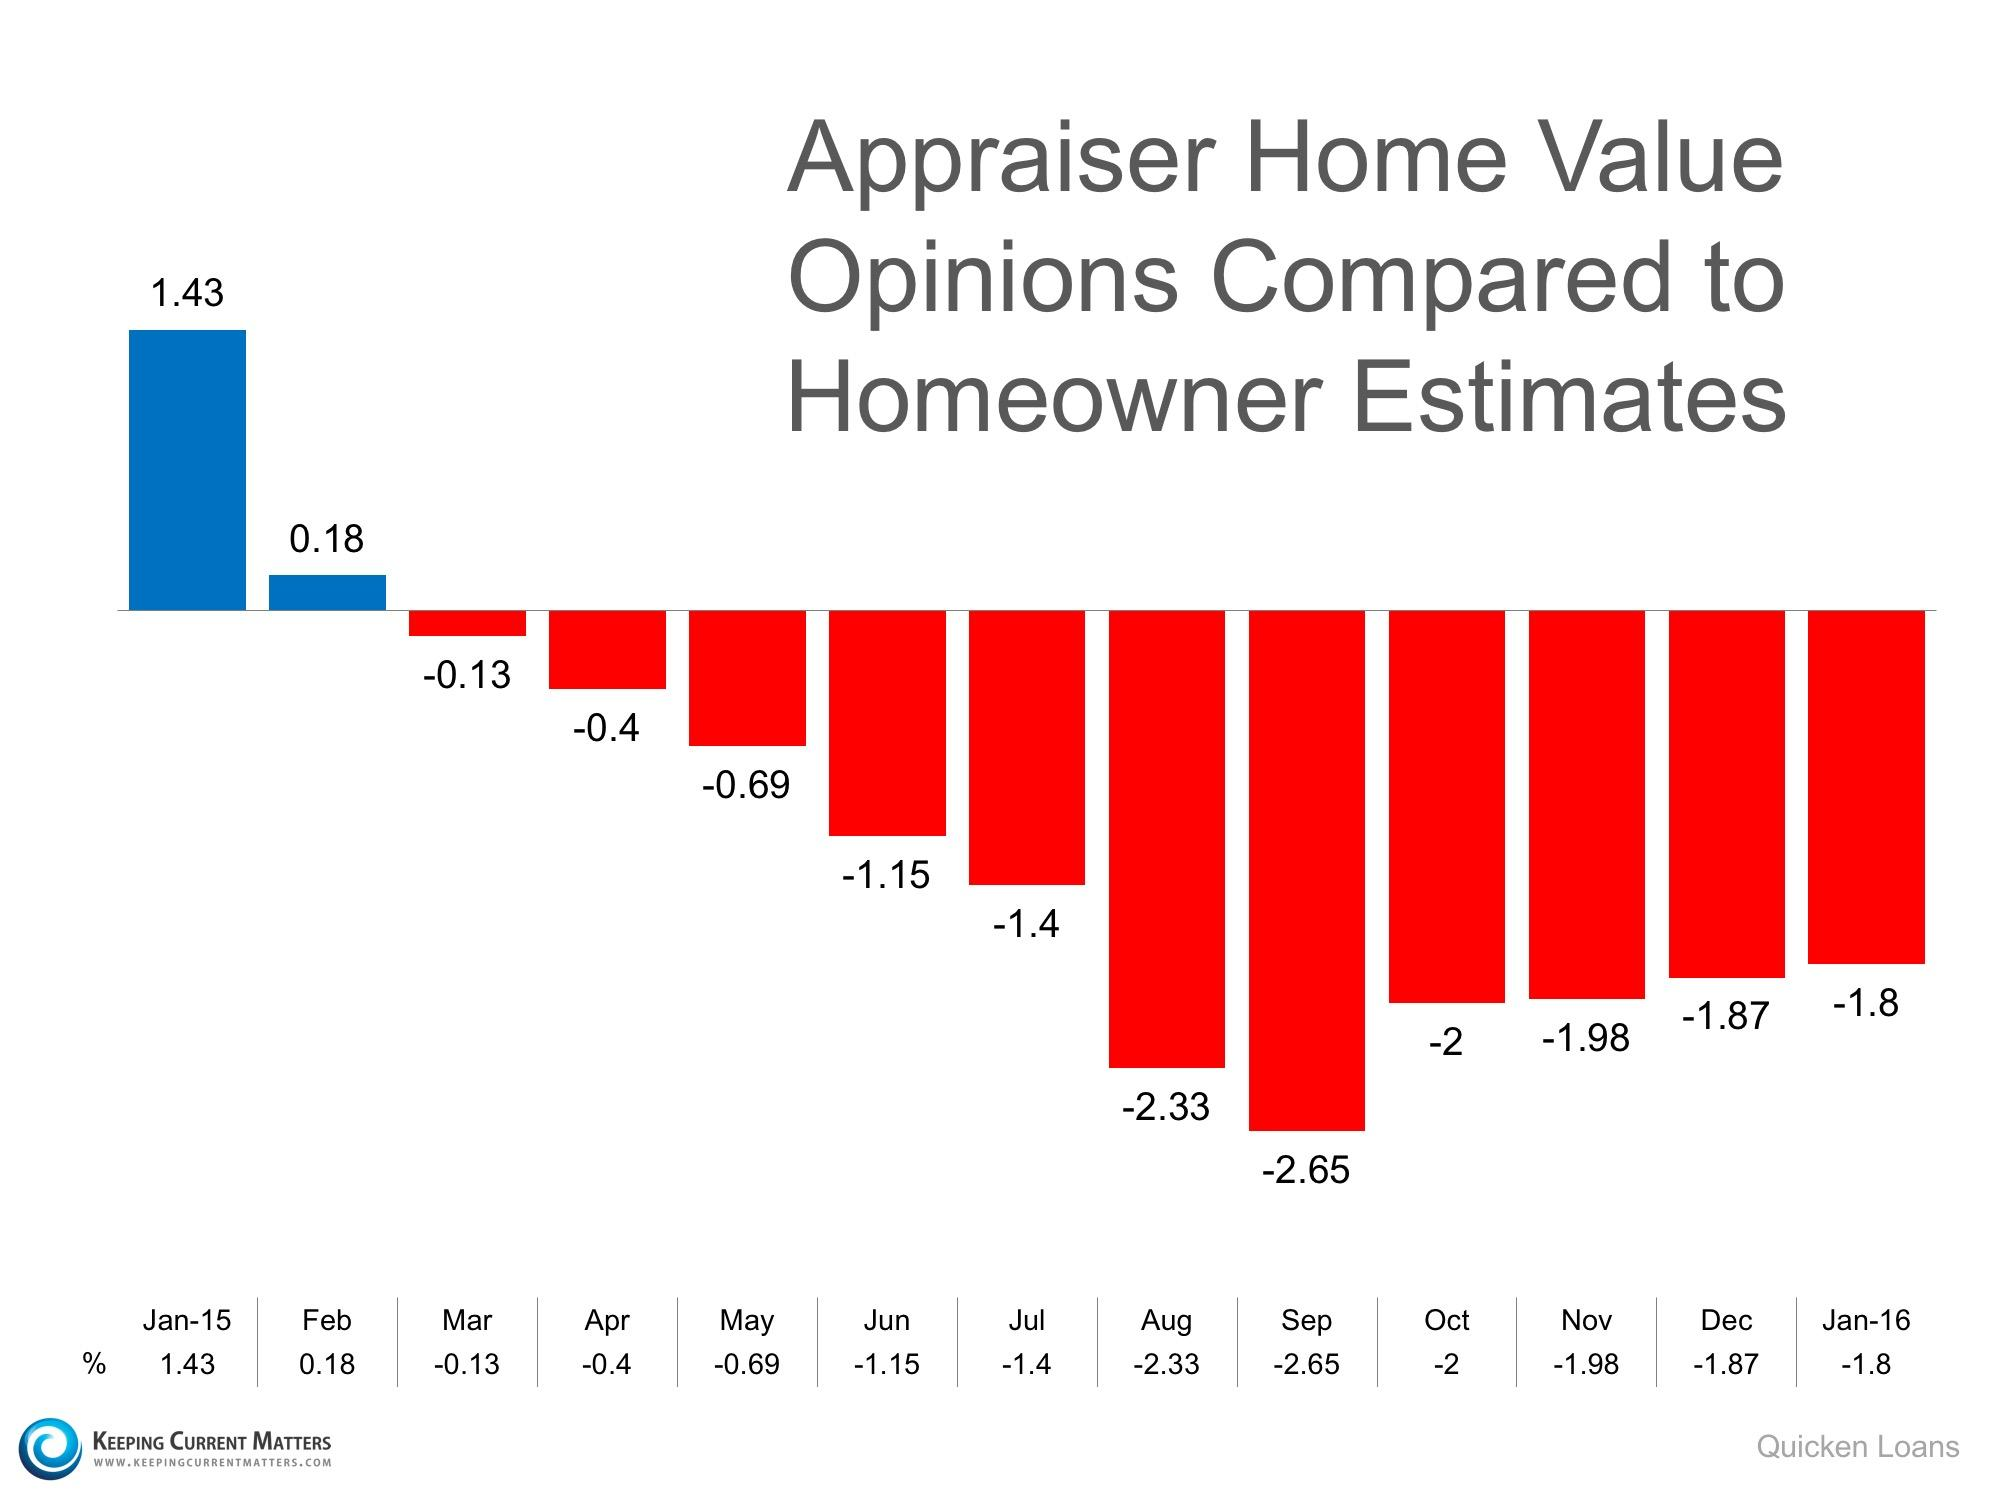 Appraiser Opinion of Home Value versus Homeowner's Estimate